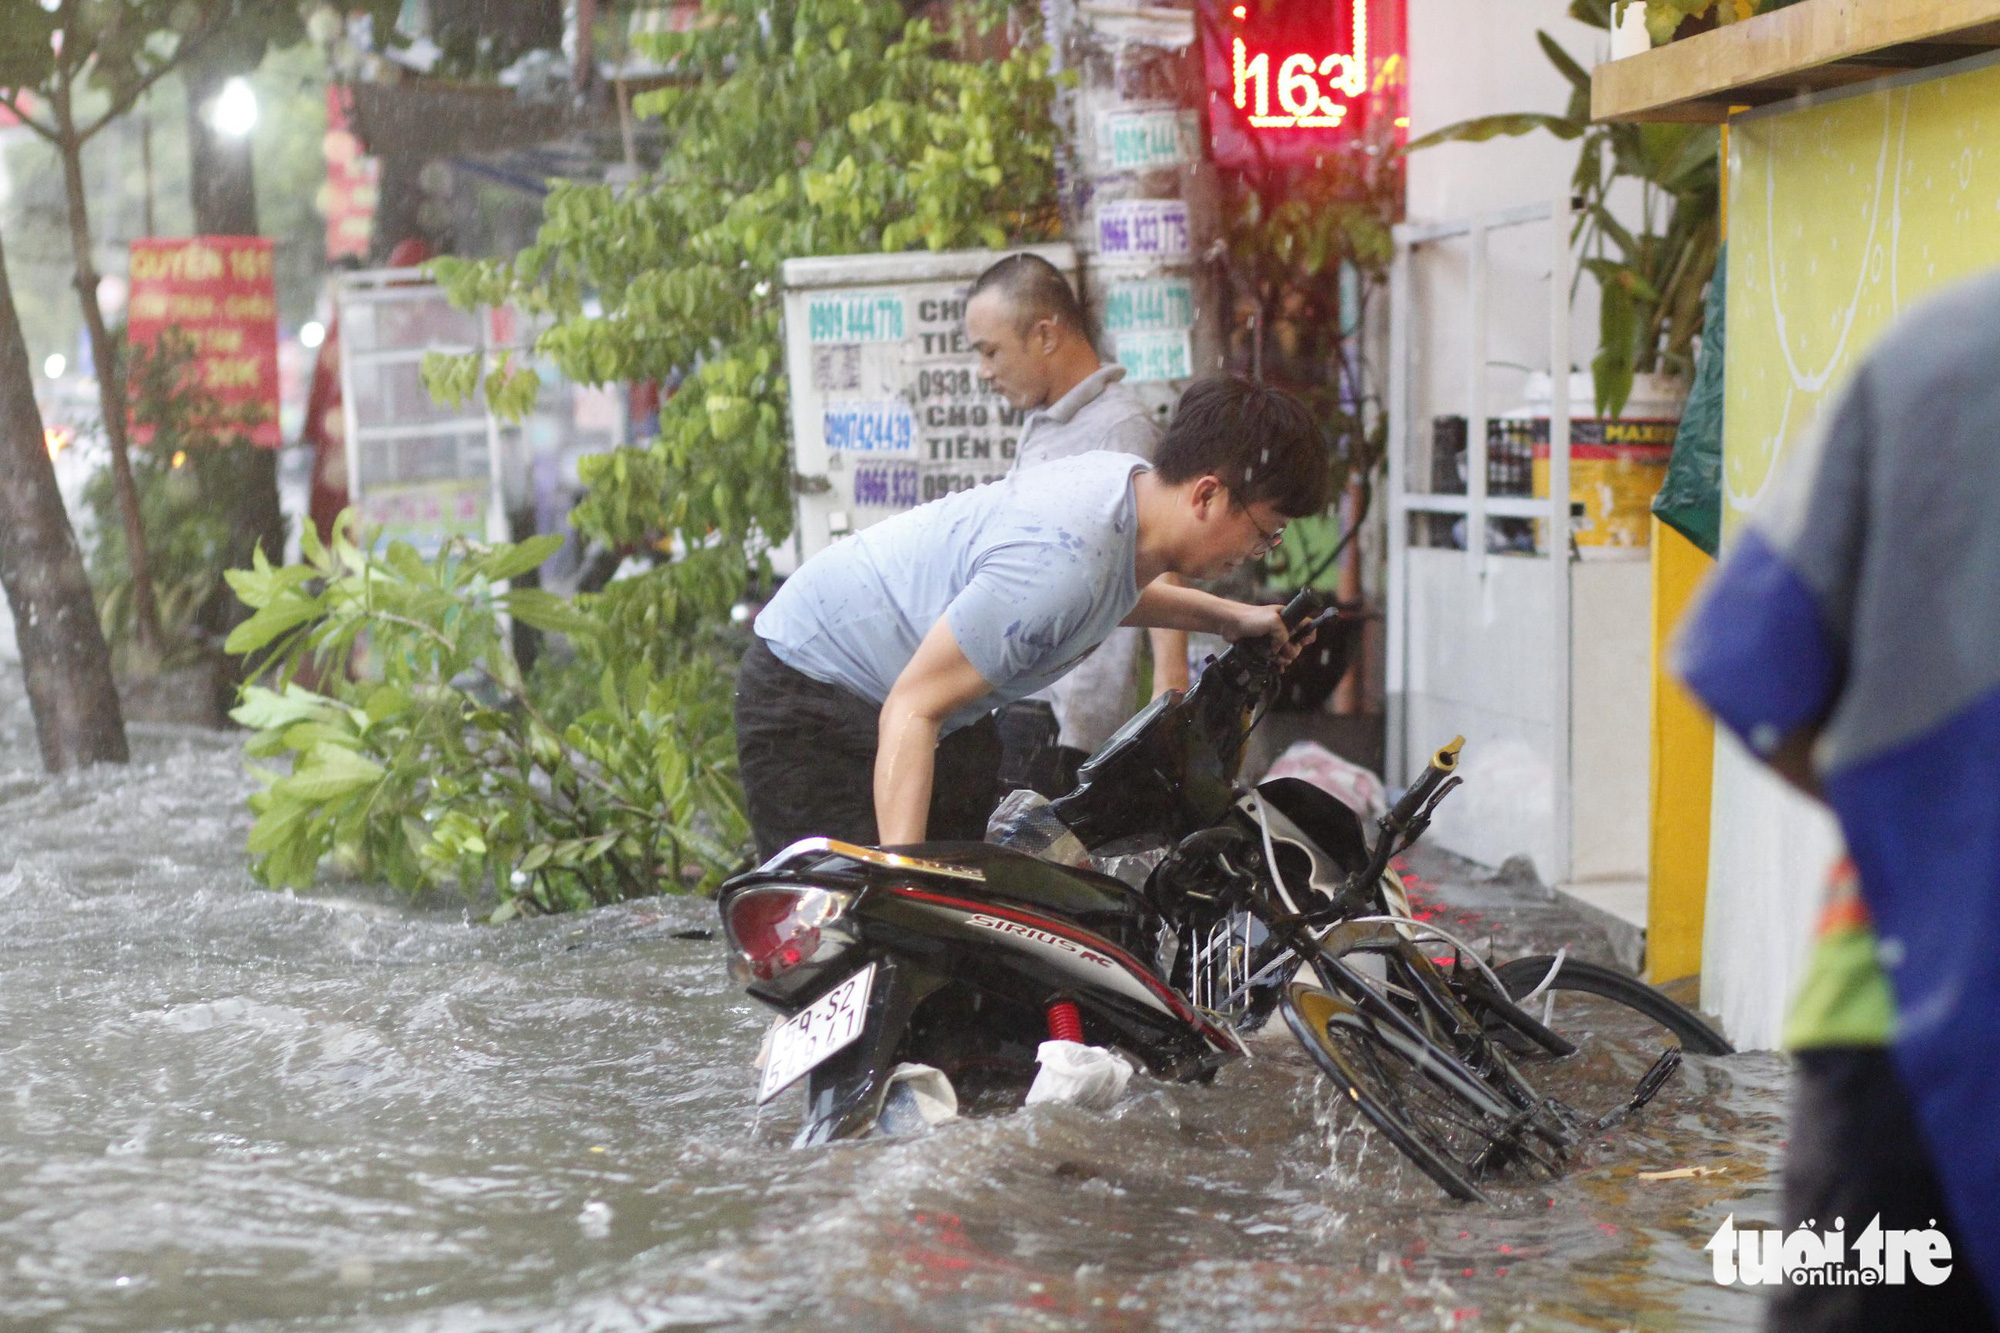 A man struggles to push his motorbike on a flooded street in Ho Chi Minh City, June 16, 2020. Photo: Chau Tuan / Tuoi Tre